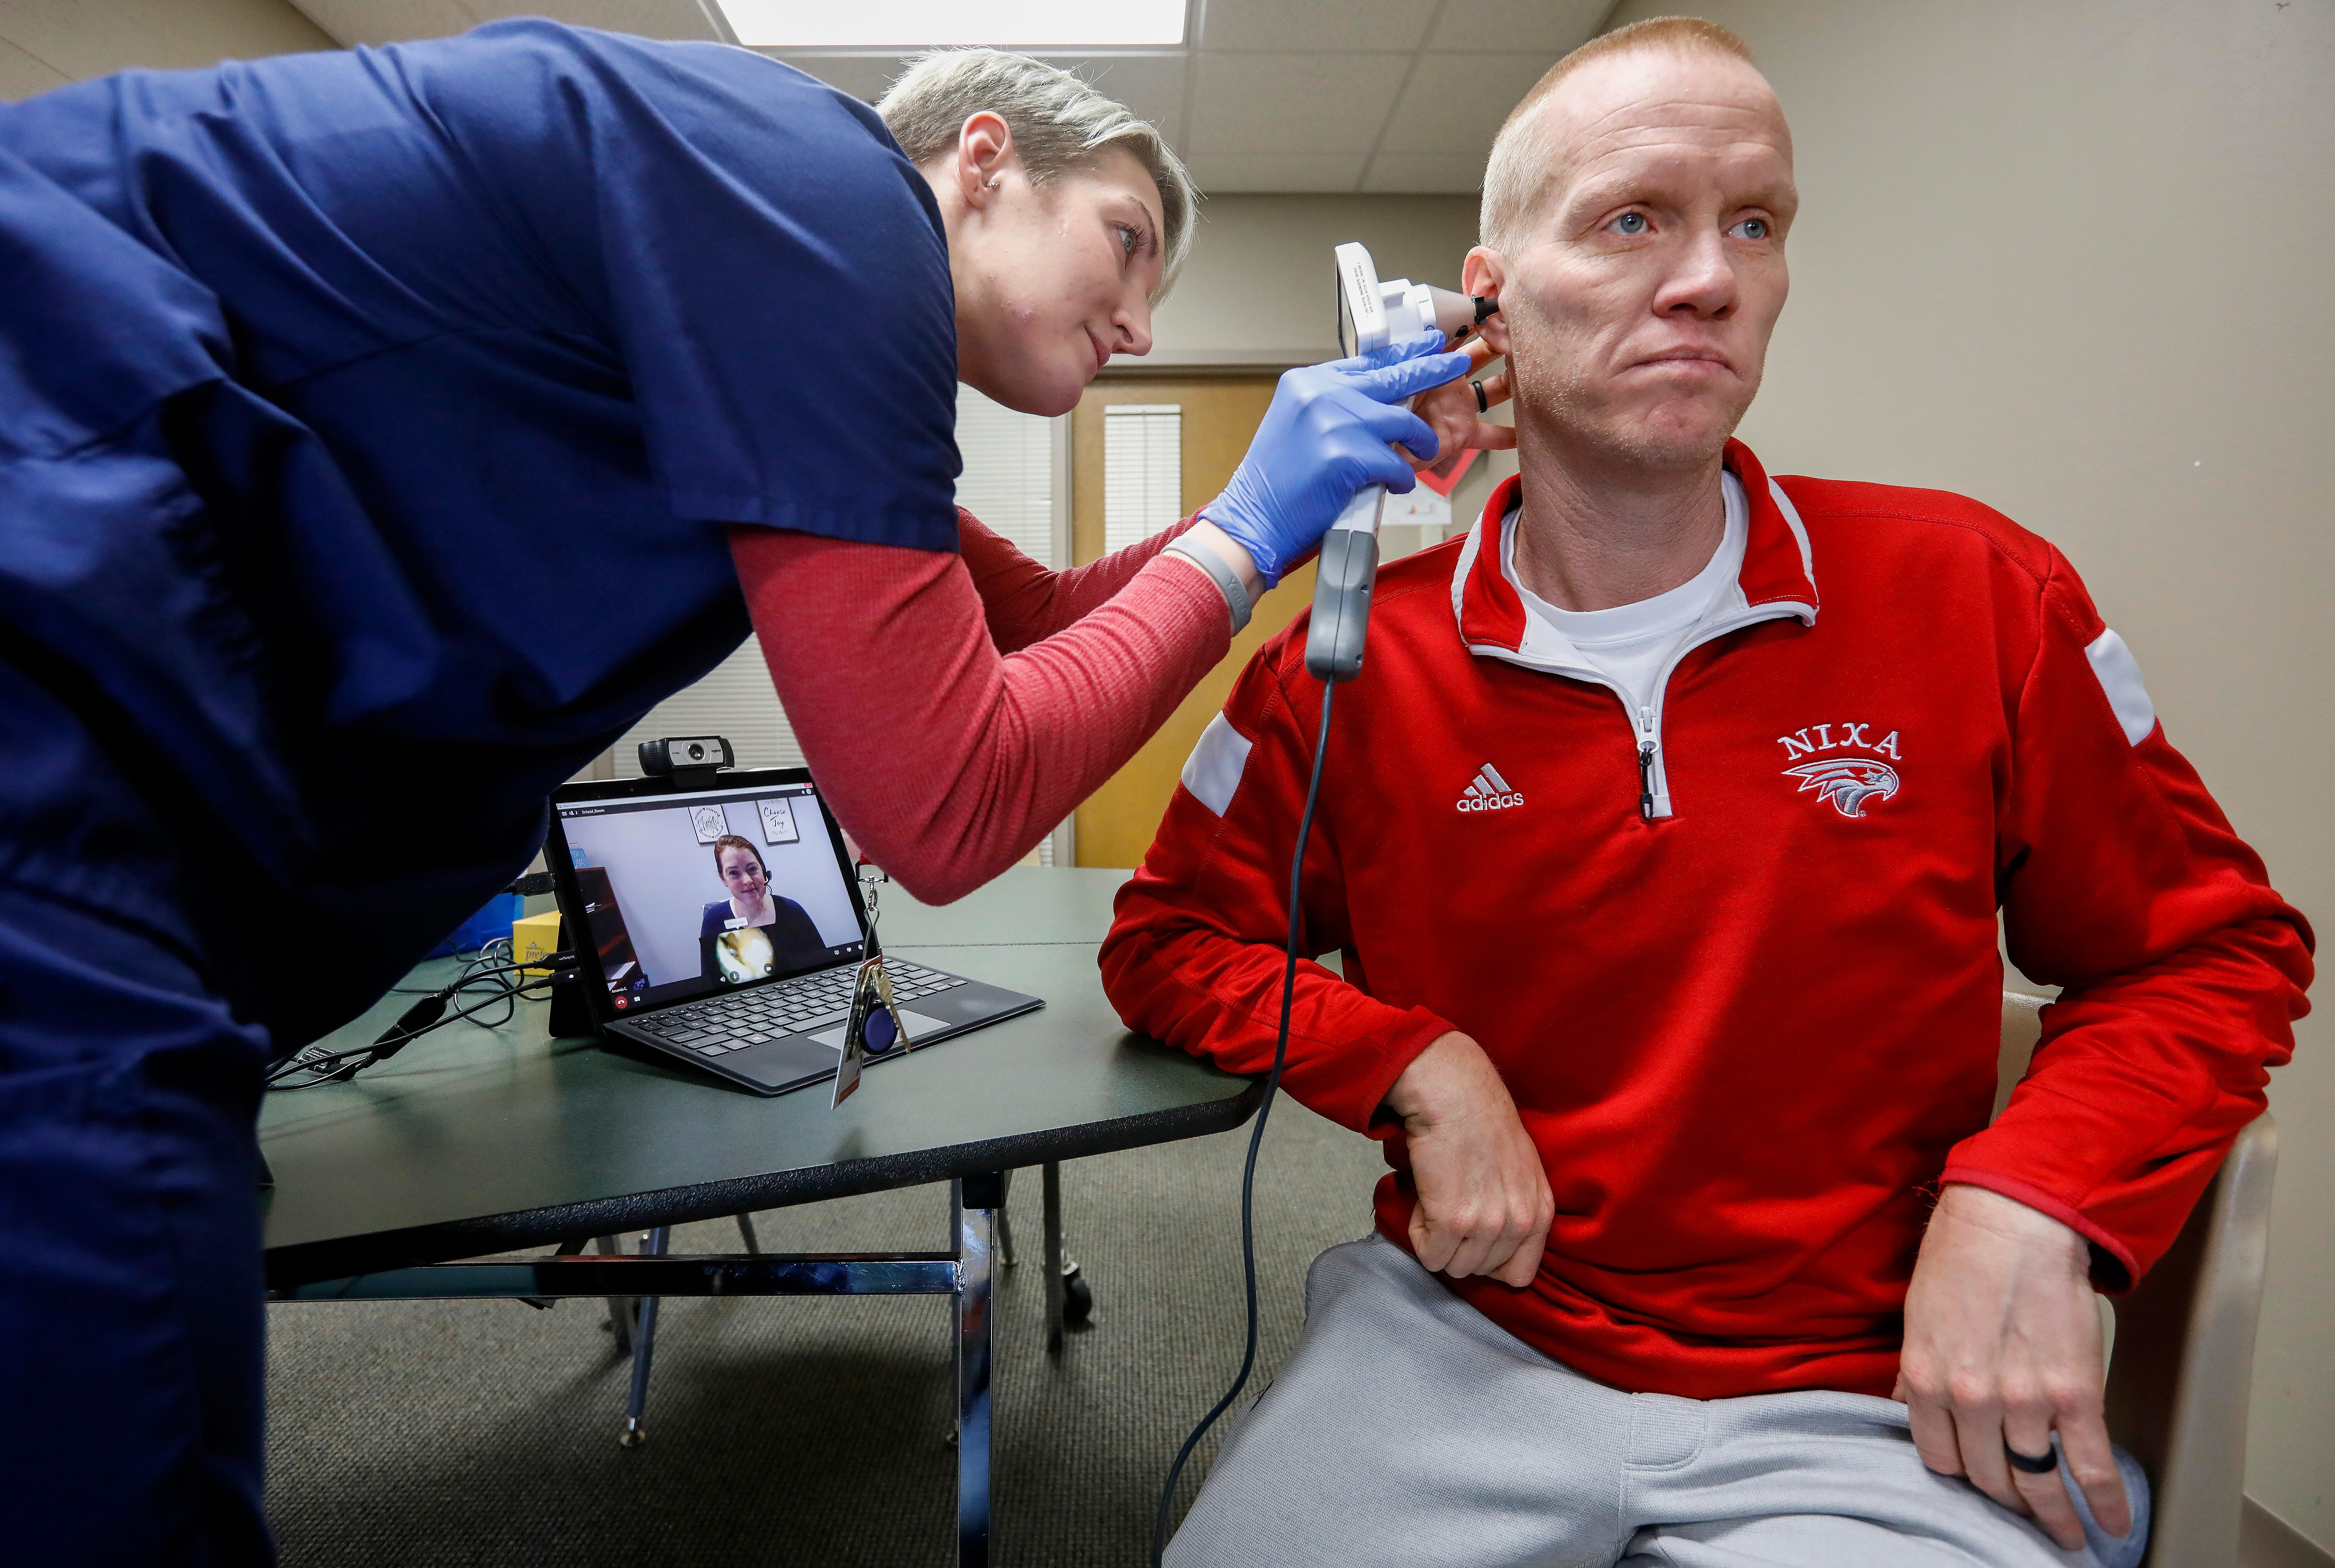 Kristen Hook, a clinic navigator, uses a otoscope lens to look in physical education teacher Brock Blansit's ear at the Cox Health clinic inside of Nixa High School.